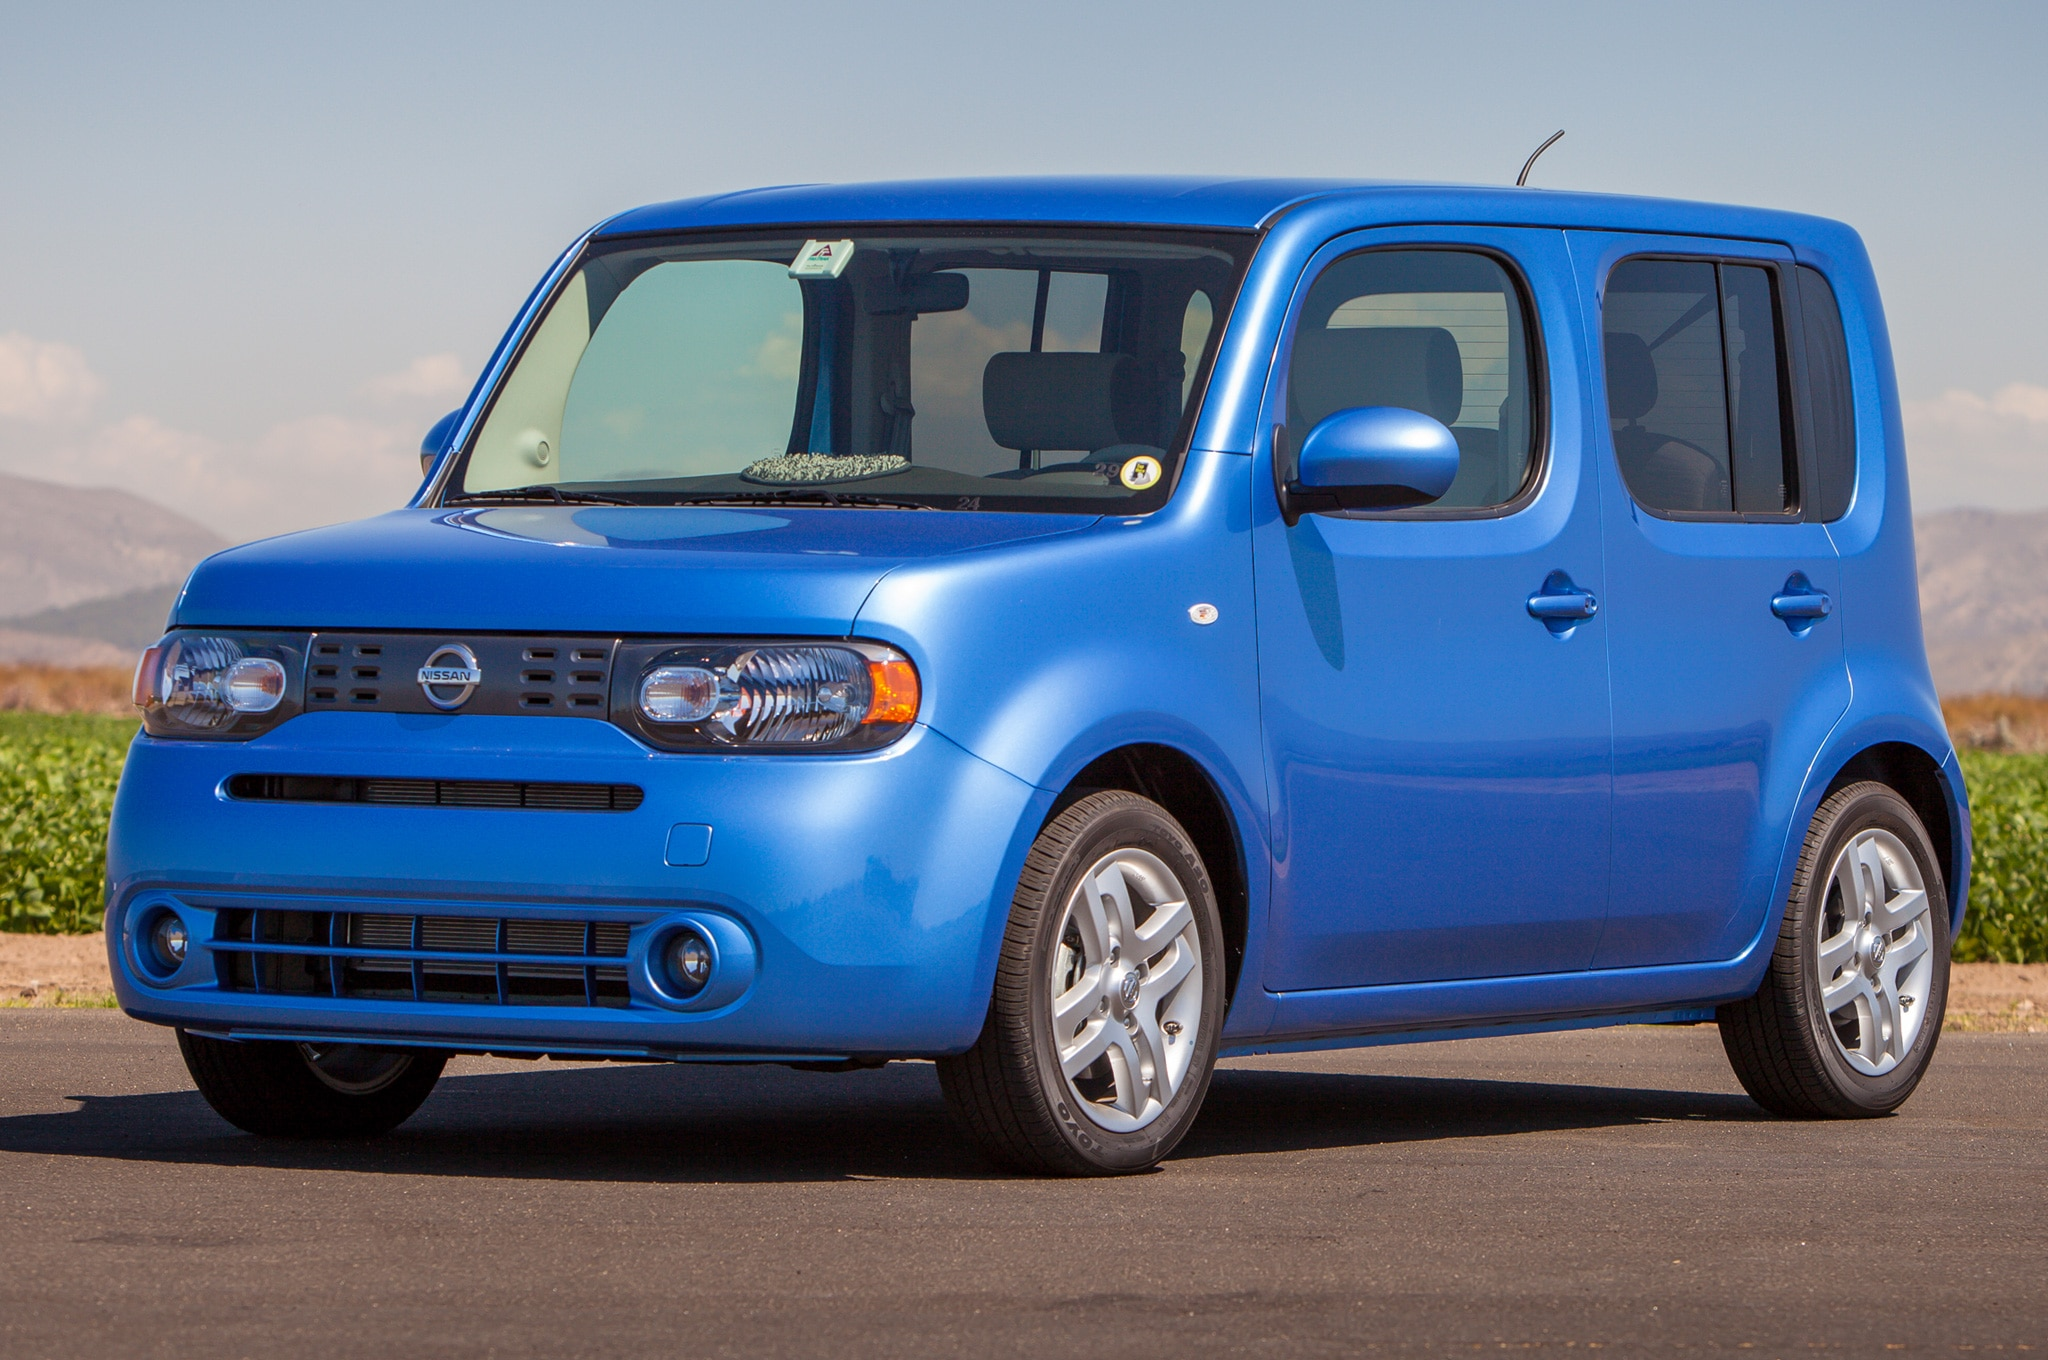 2014 Nissan Cube SL Front Three Quarters View 21